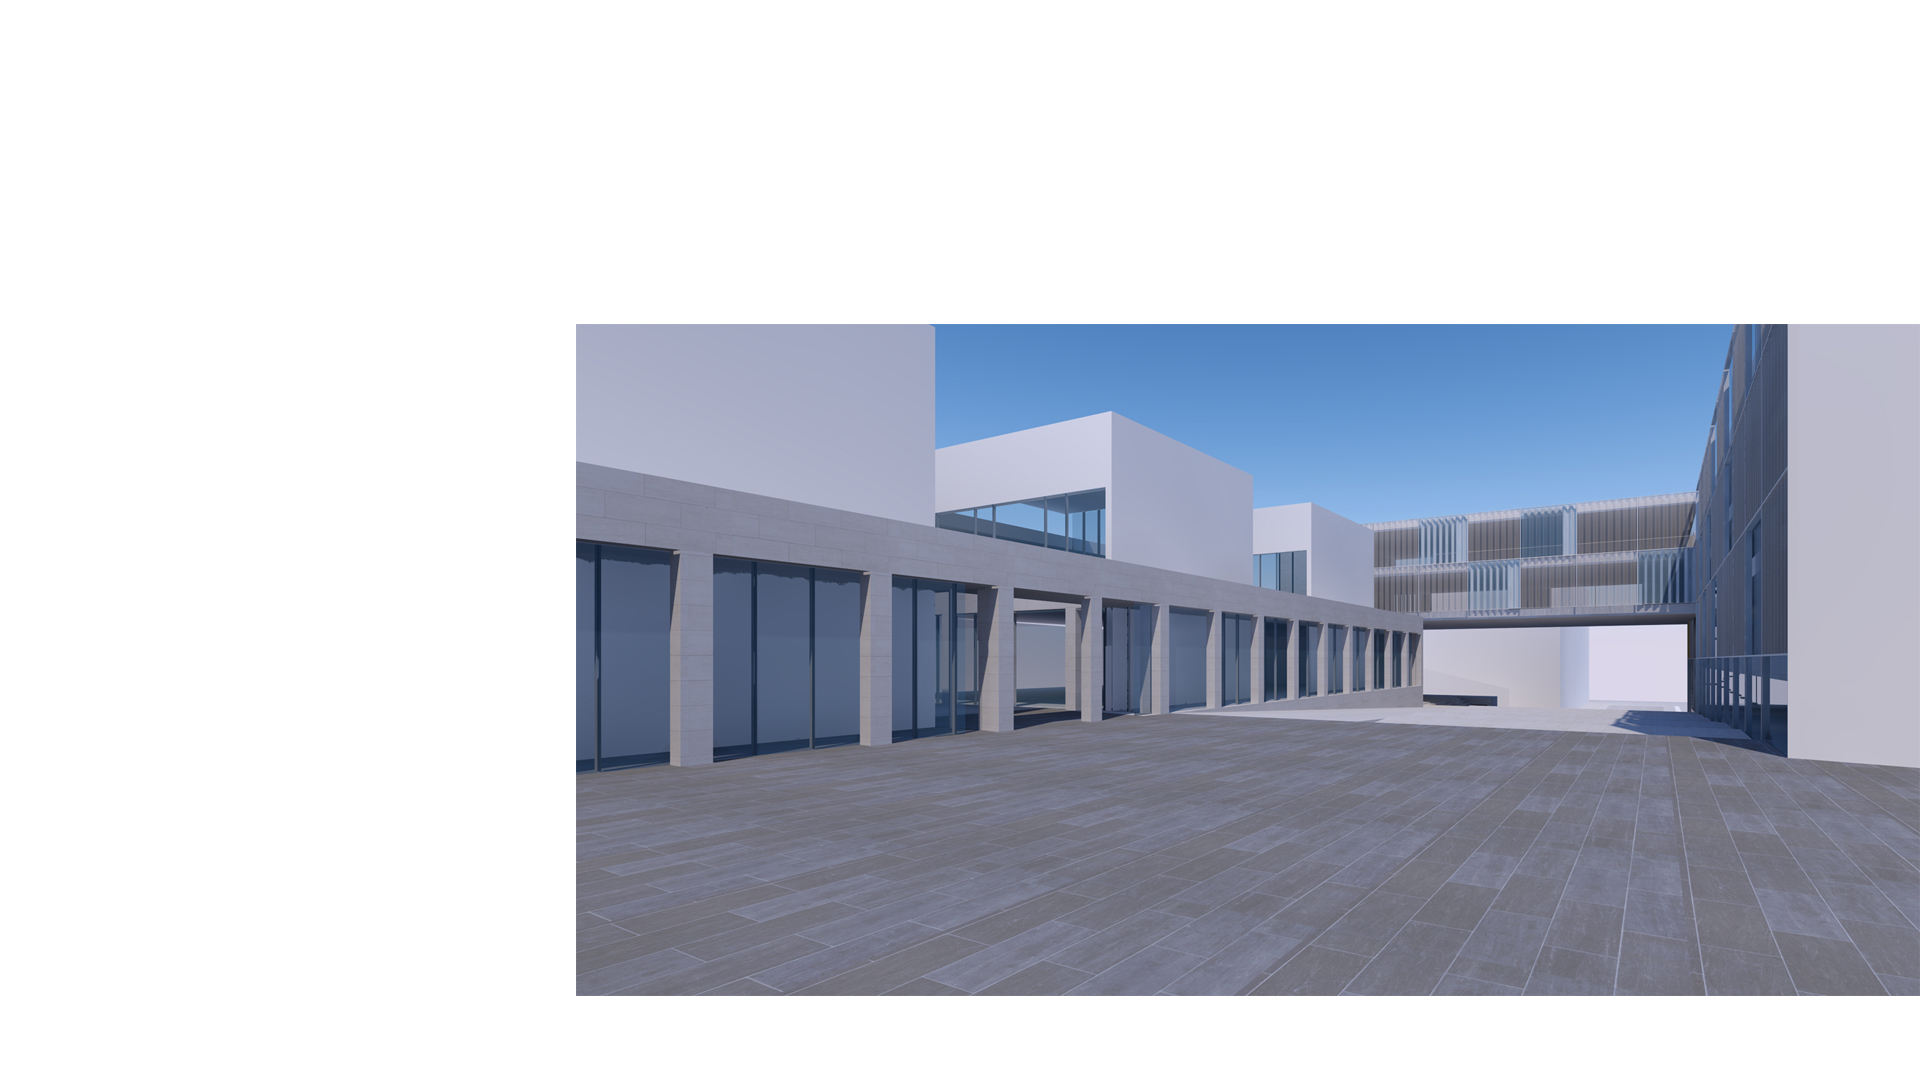 3D composite render of the proposed music school and practice rooms at the Kronberg Academy, as seen from the new courtyard